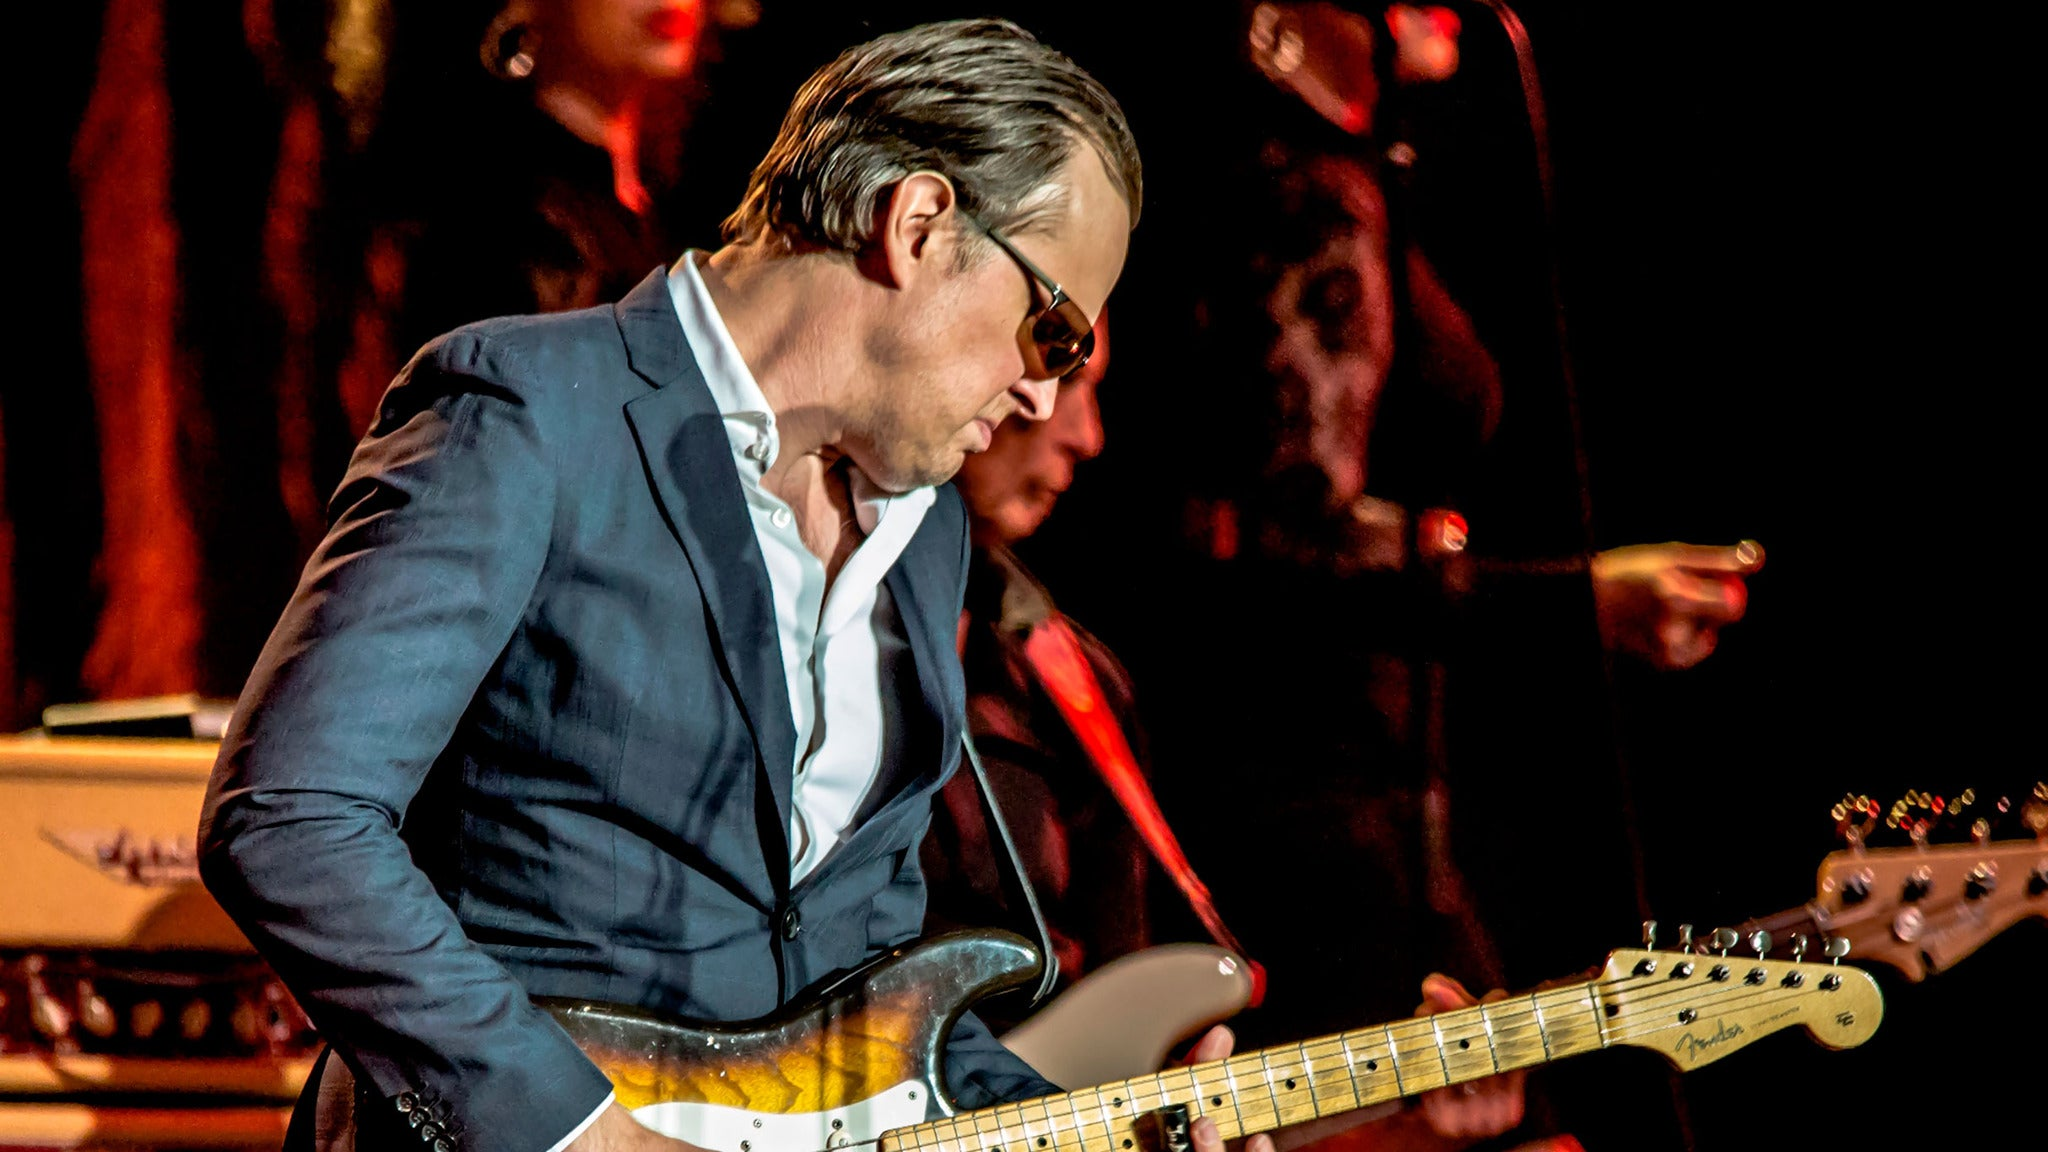 Joe Bonamassa at F.M. Kirby Center